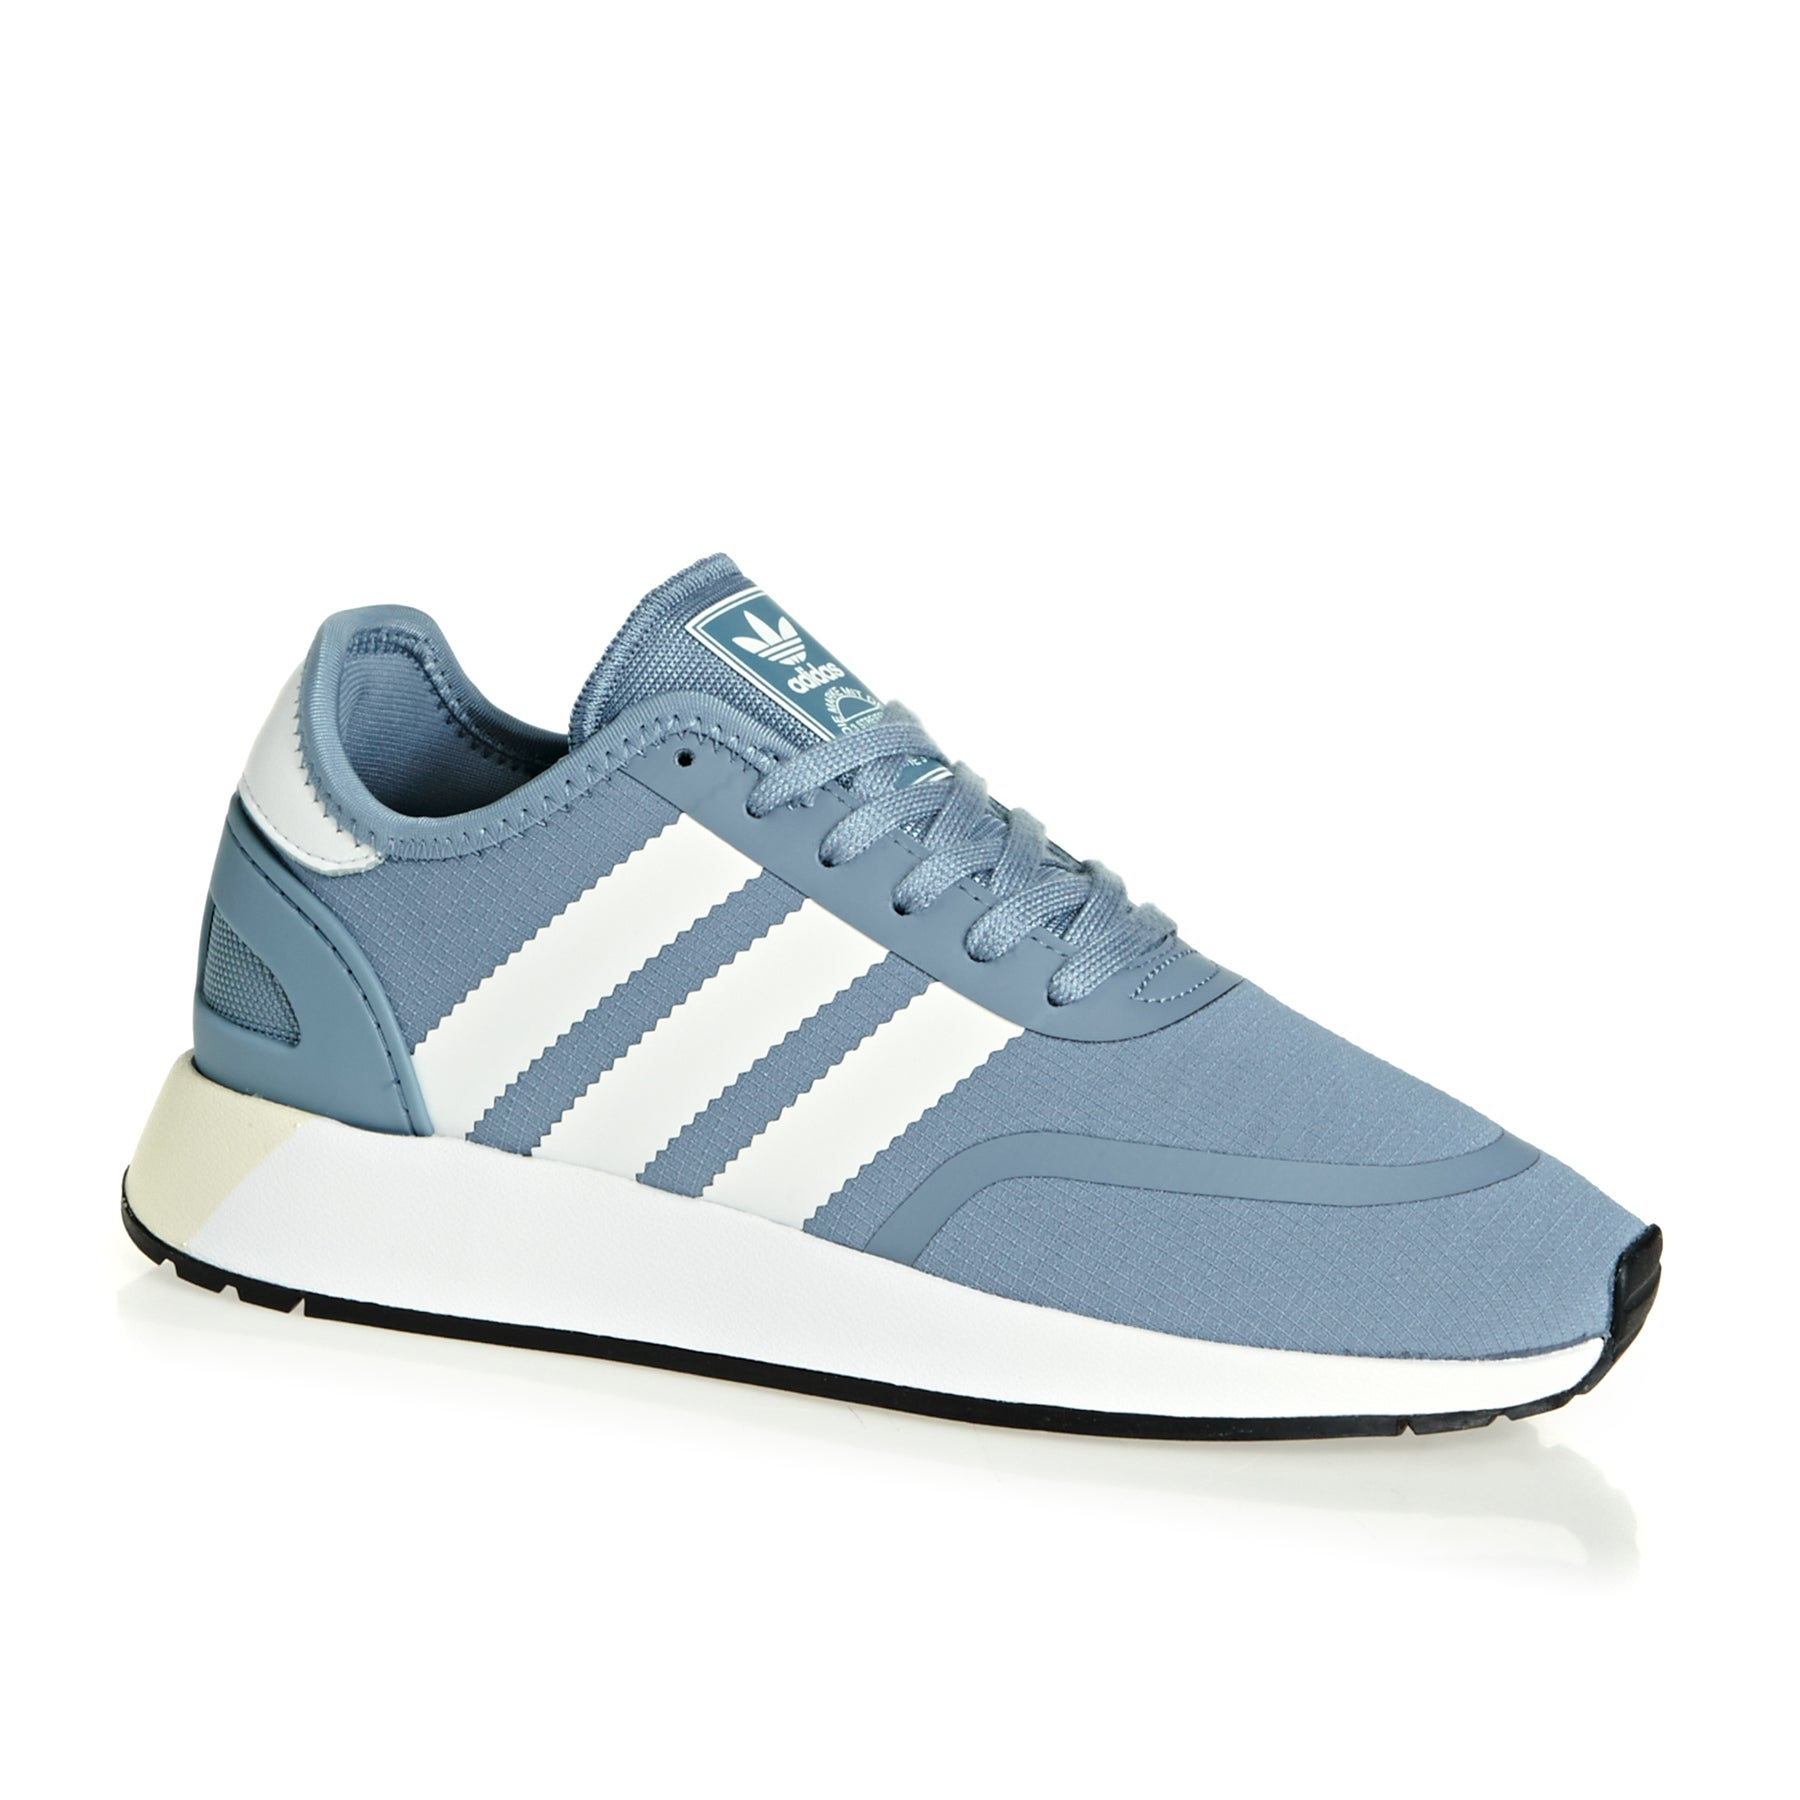 b939a96f02840 Adidas Originals Swift Run Womens Shoes available from Surfdome